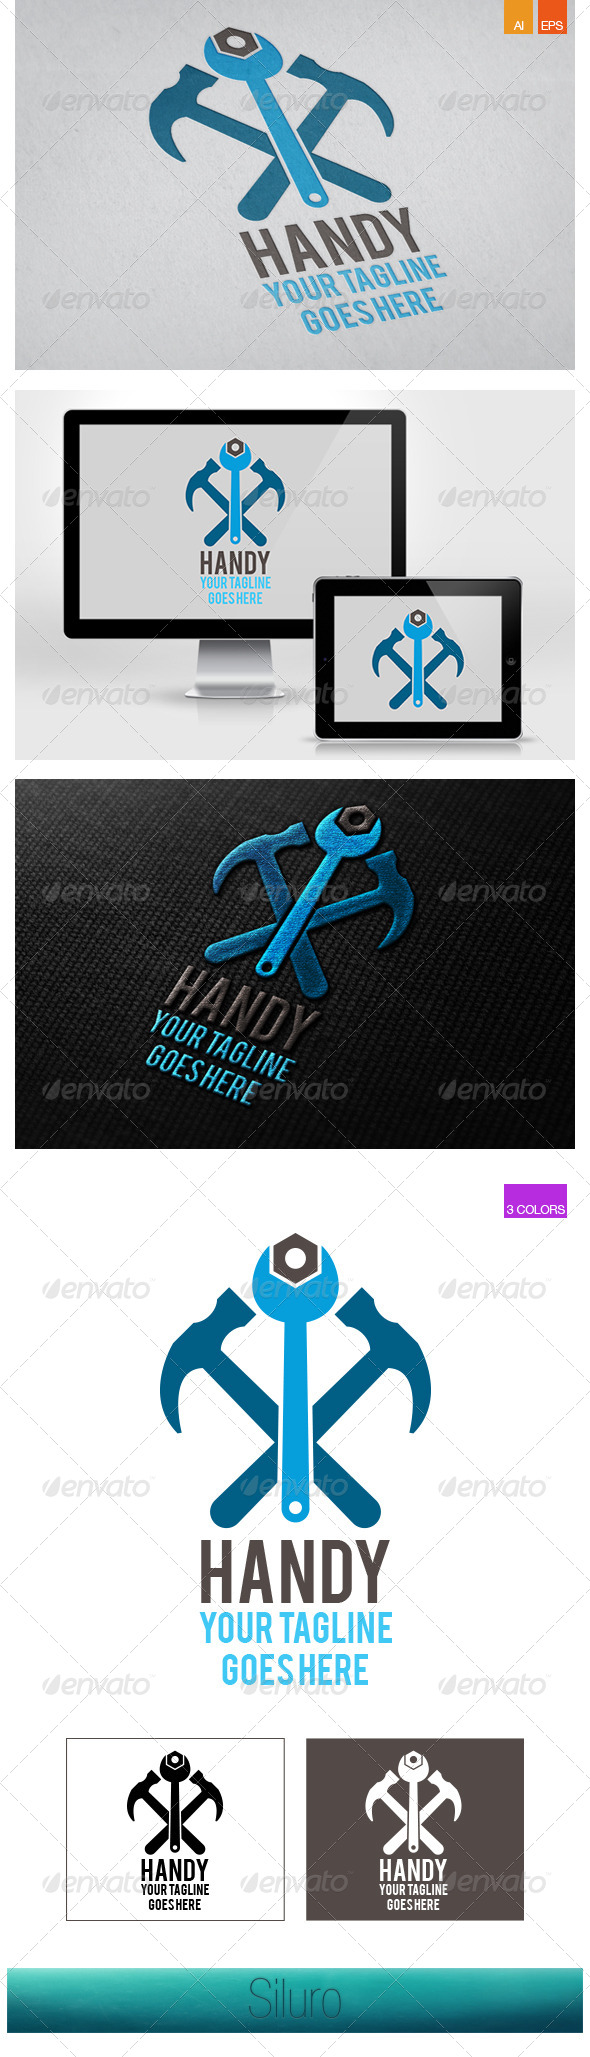 GraphicRiver Handy V2 7361364